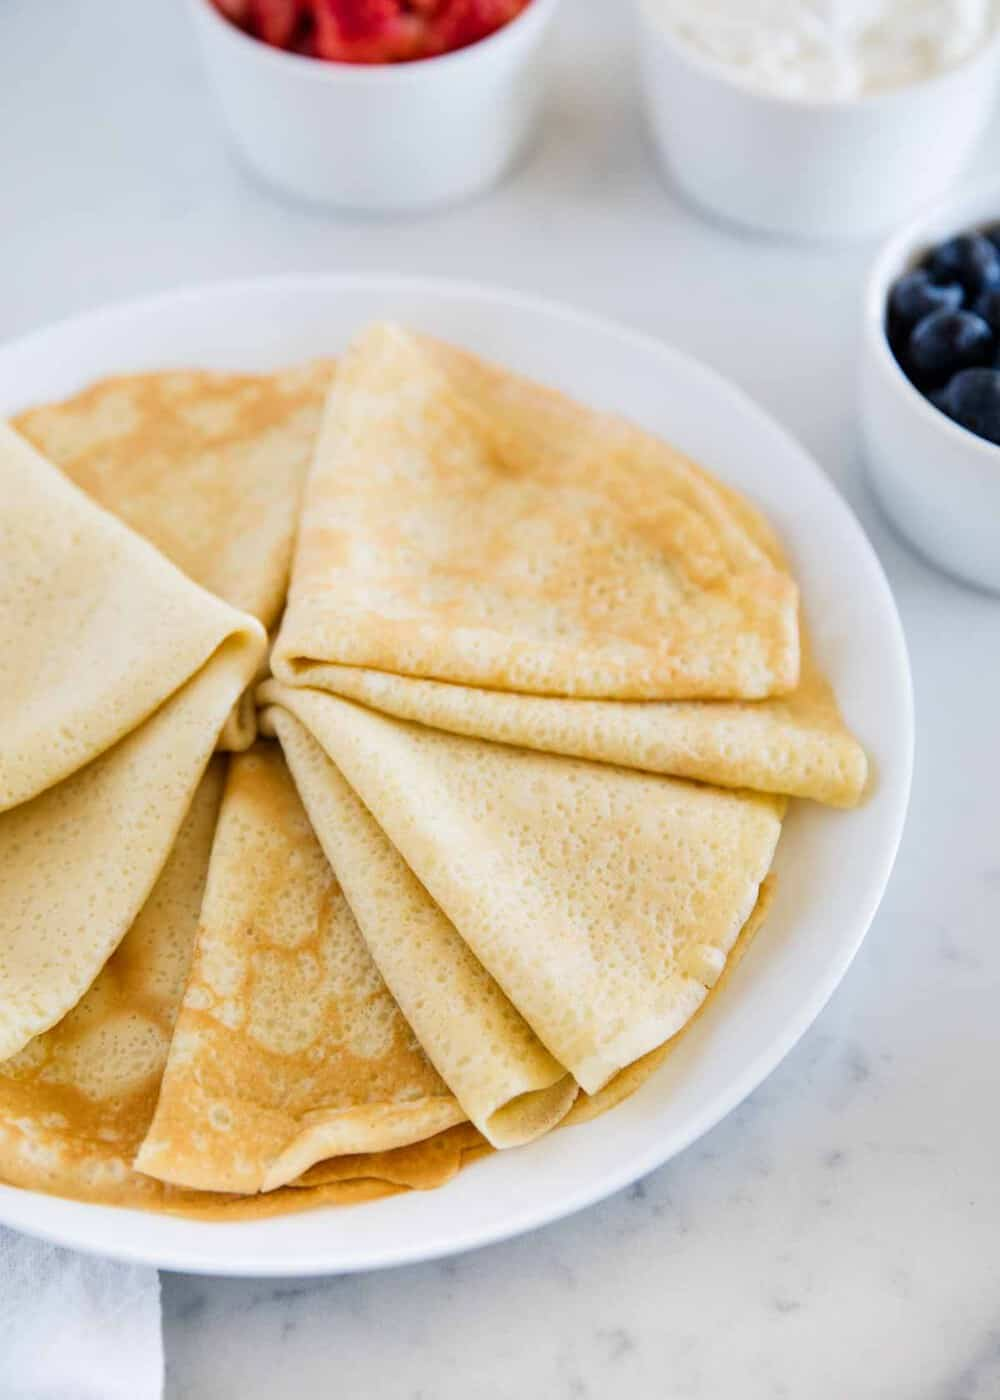 The best part about these crepes is they can be made right in your blender. Not only are they great for breakfast, but dessert too!